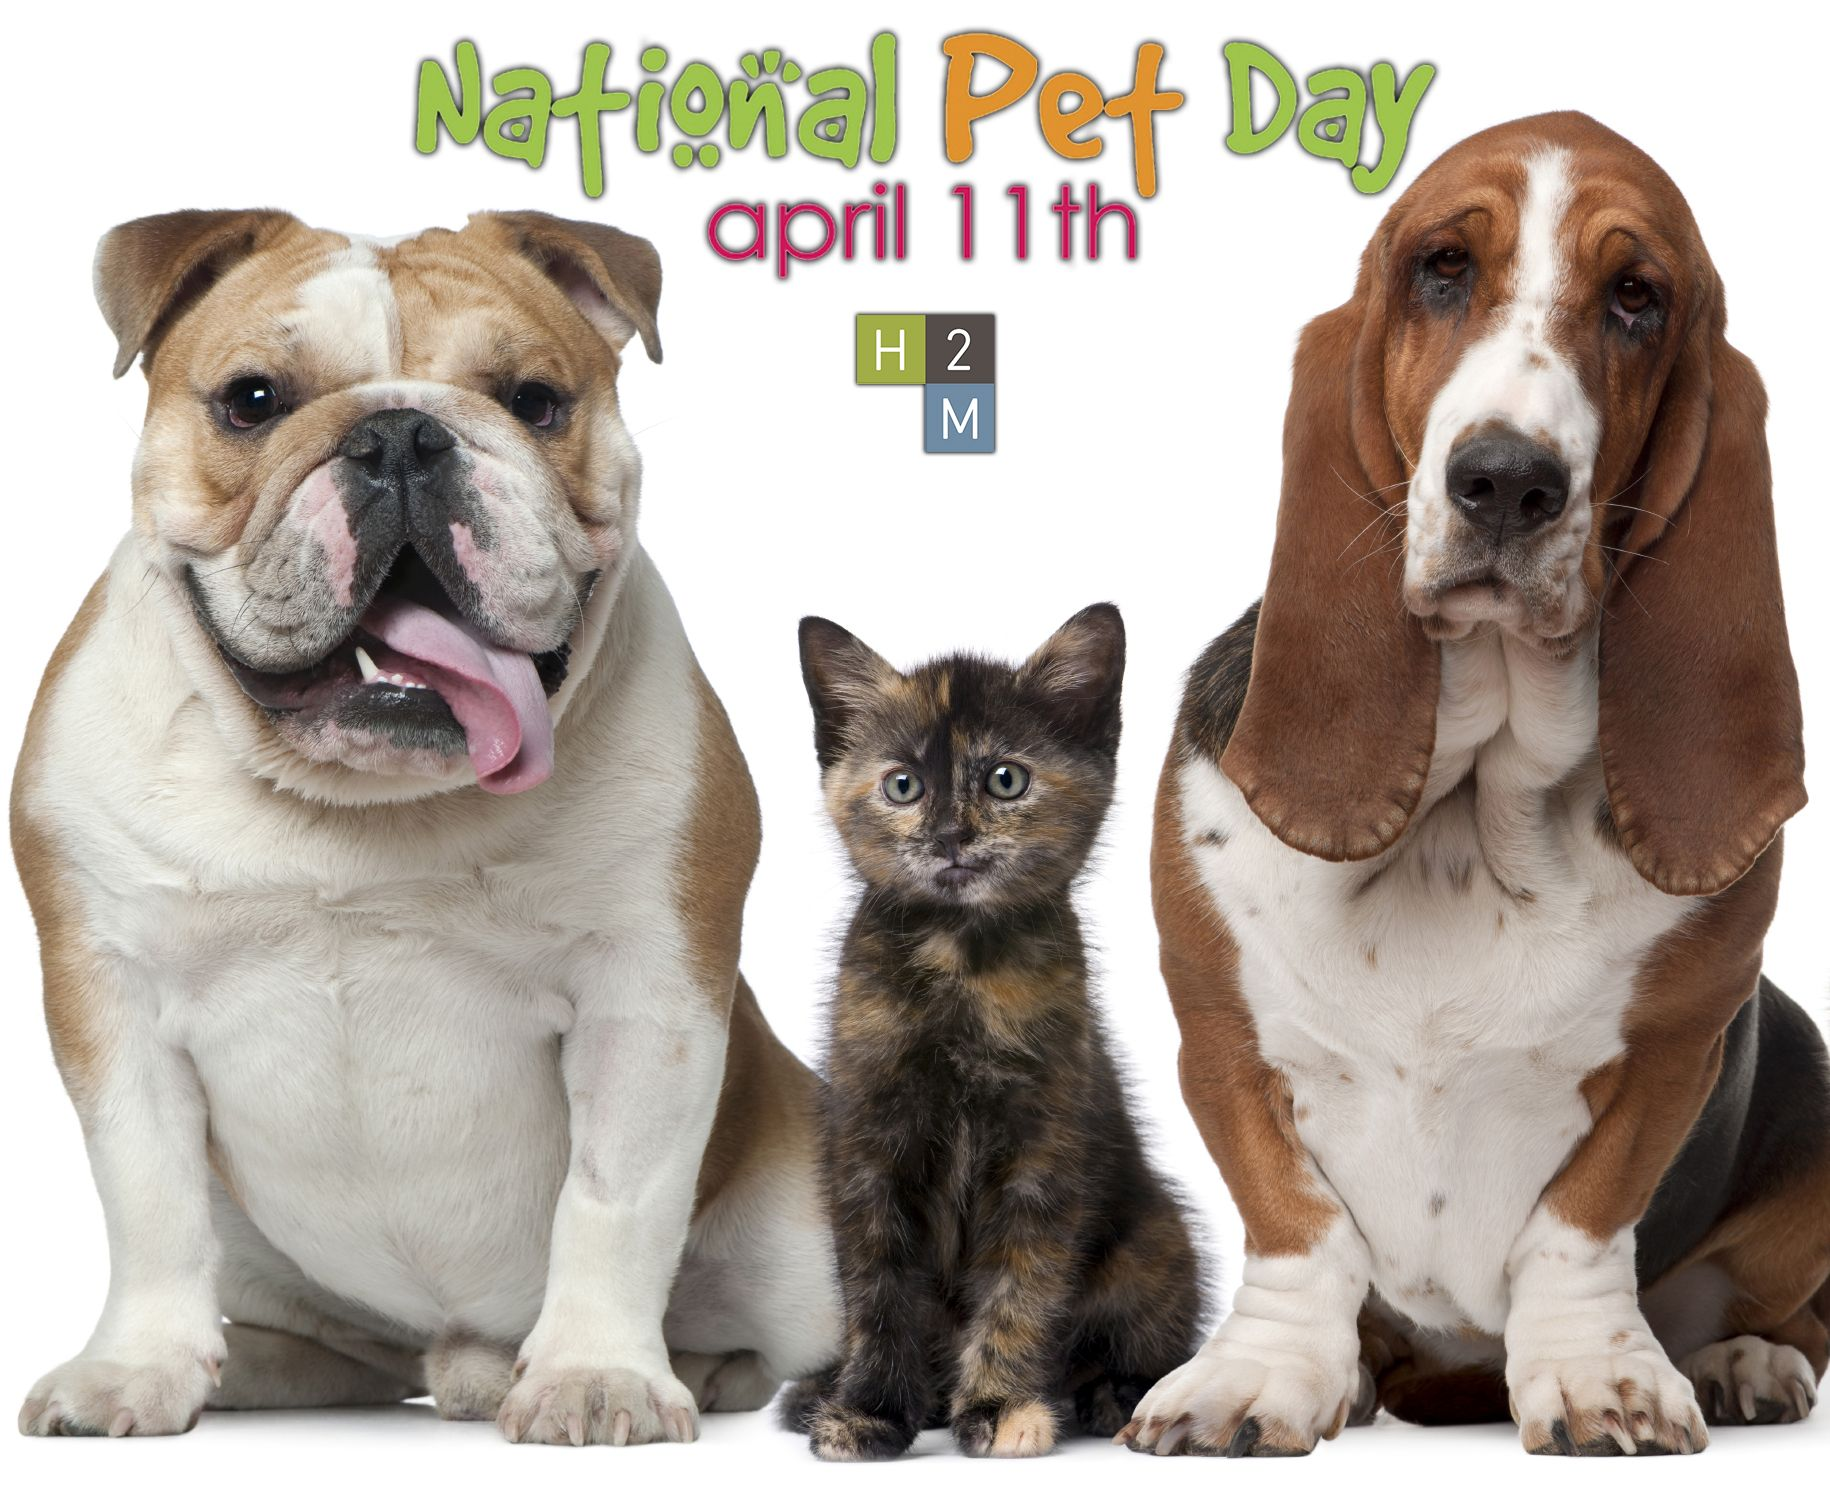 Happy National Pet Day! Even though loving our pets is